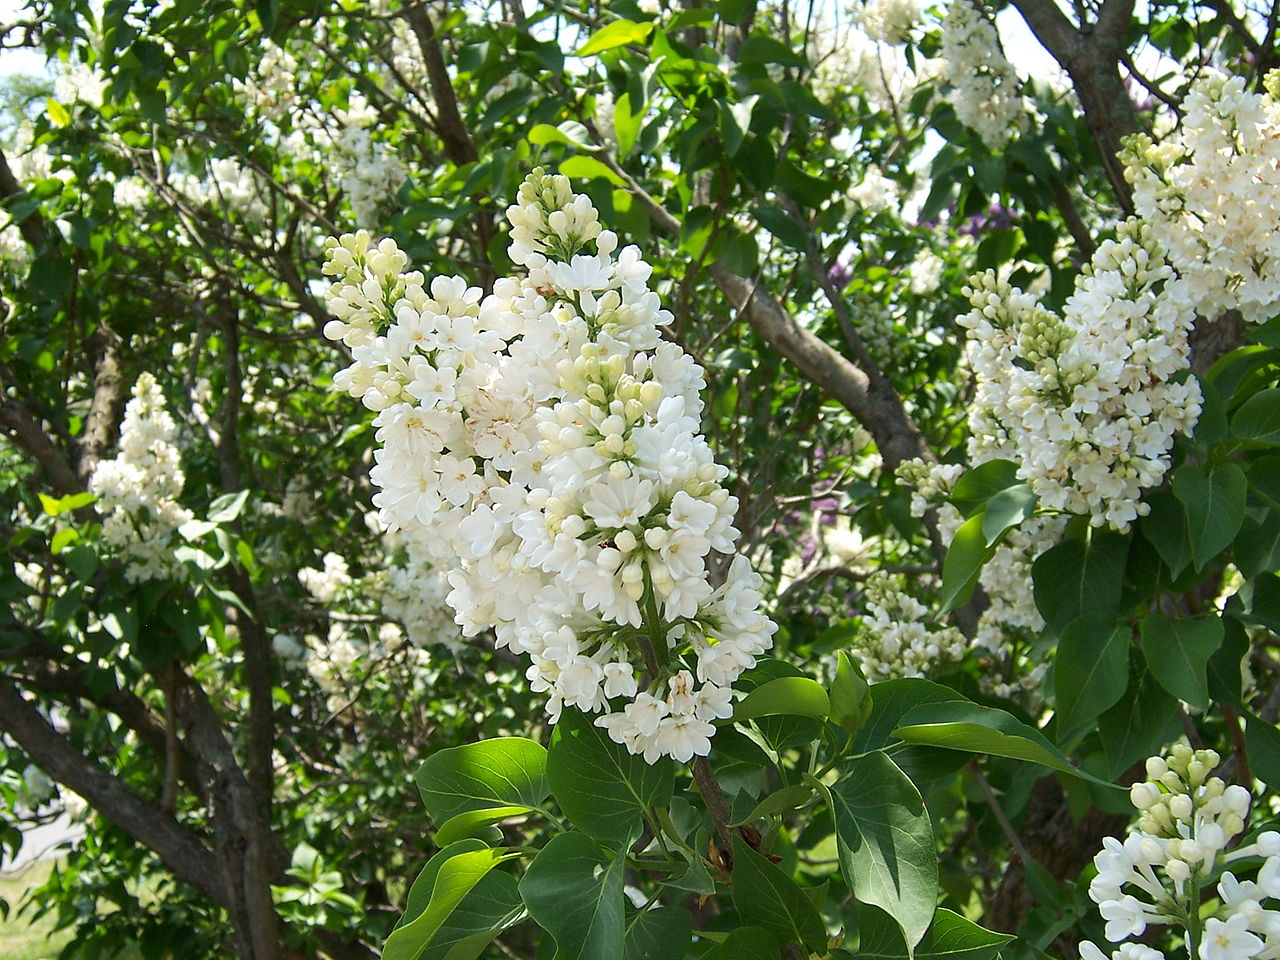 a critique of the lilac festival in rochester See who's going to rochester lilac festival 2018 in rochester, ny upstate new york knows how to bring in the spring in style as the largest free festival of its kind in north america, the.